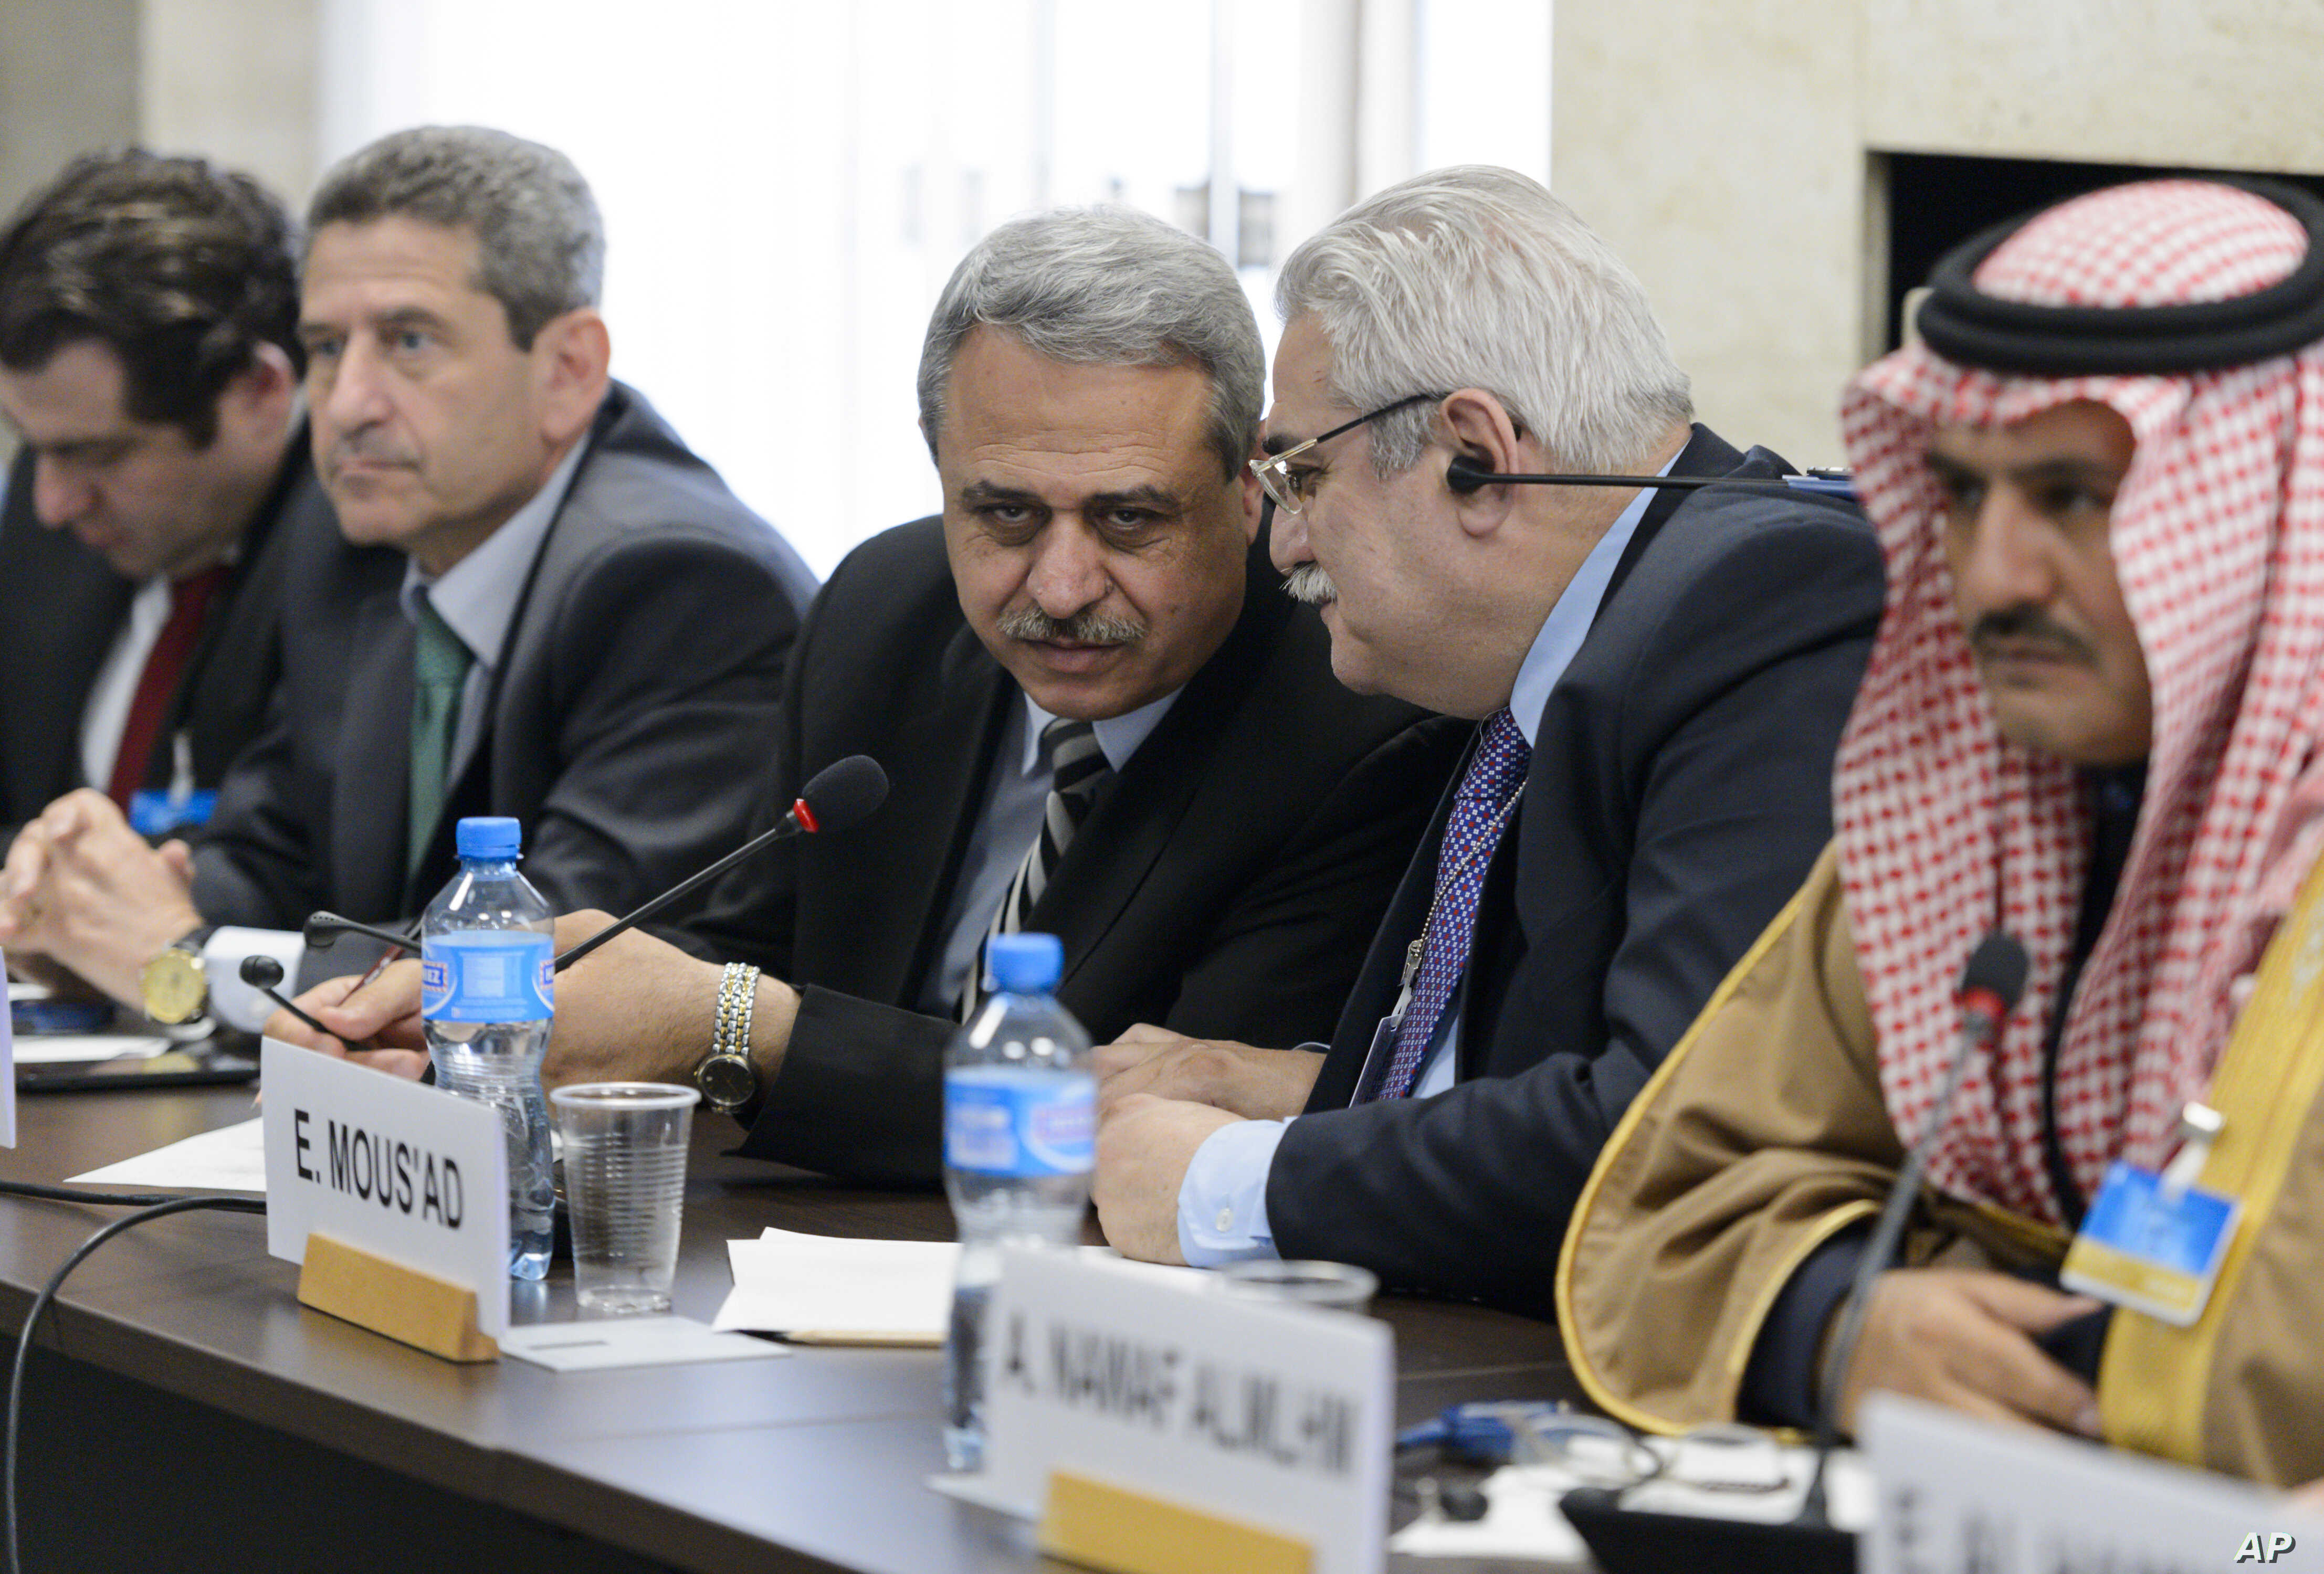 Member of the Syrian interior opposition Mahmoud Marai, third right, listens to Elian Mous'ad, second right, during a meeting with the UN Syria Envoy during Syria peace talks at the United Nations Office in Geneva, Switzerland, April 22, 2016.